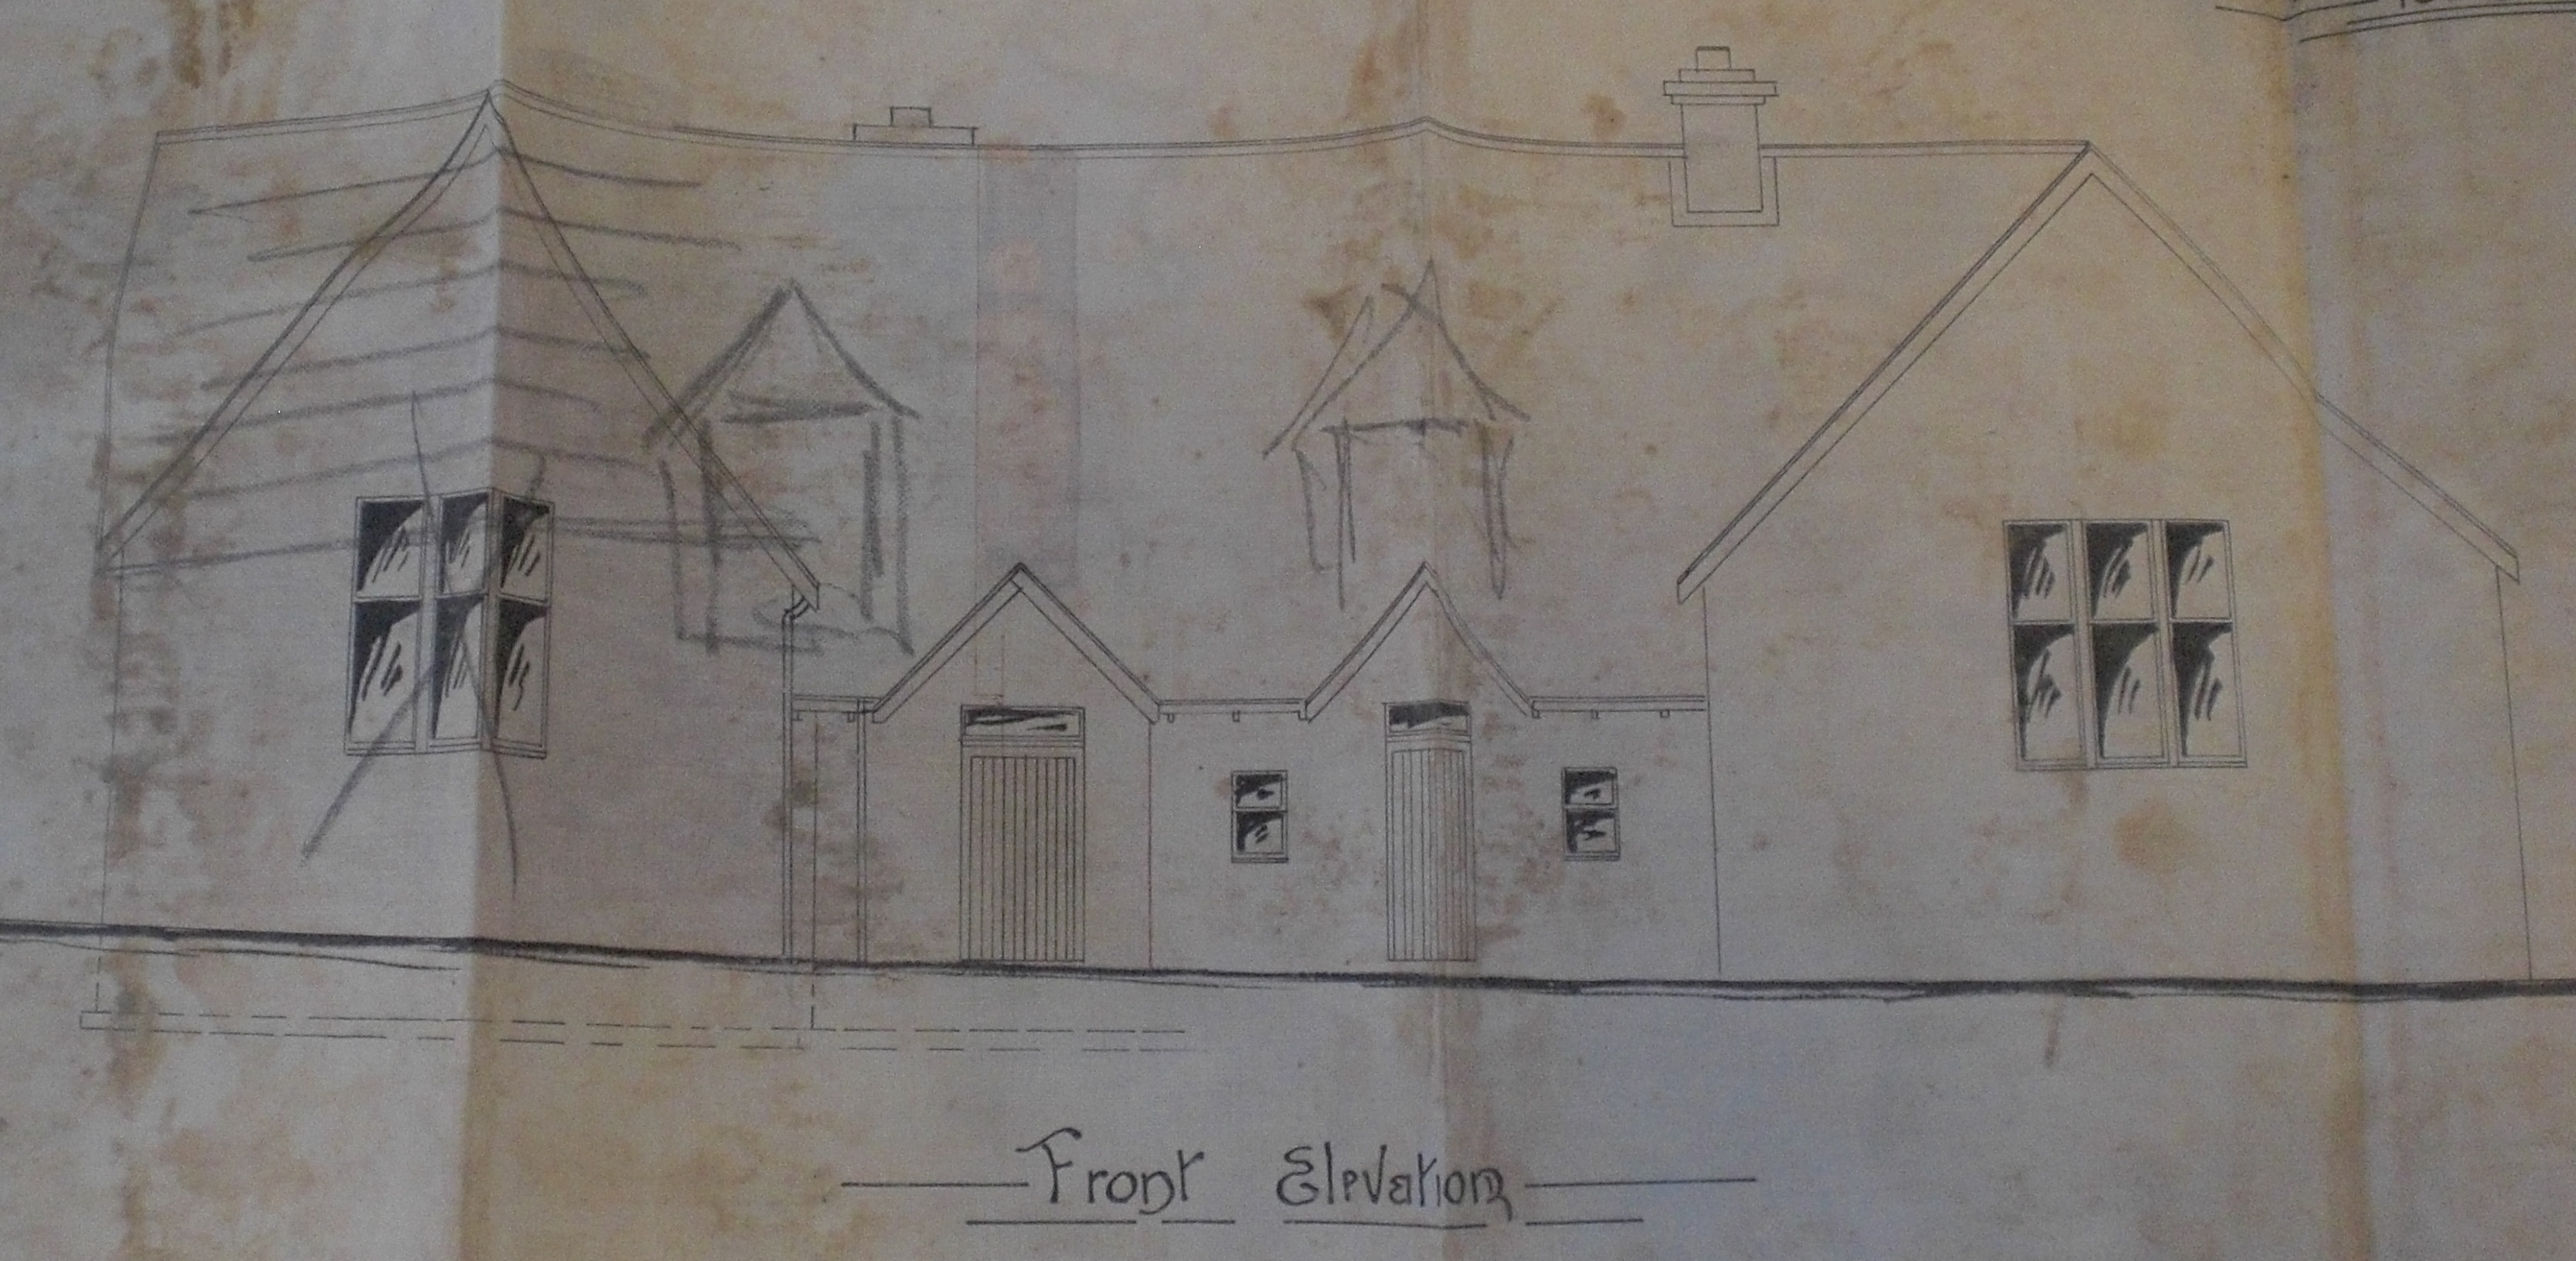 Carloway School 1893 elevation